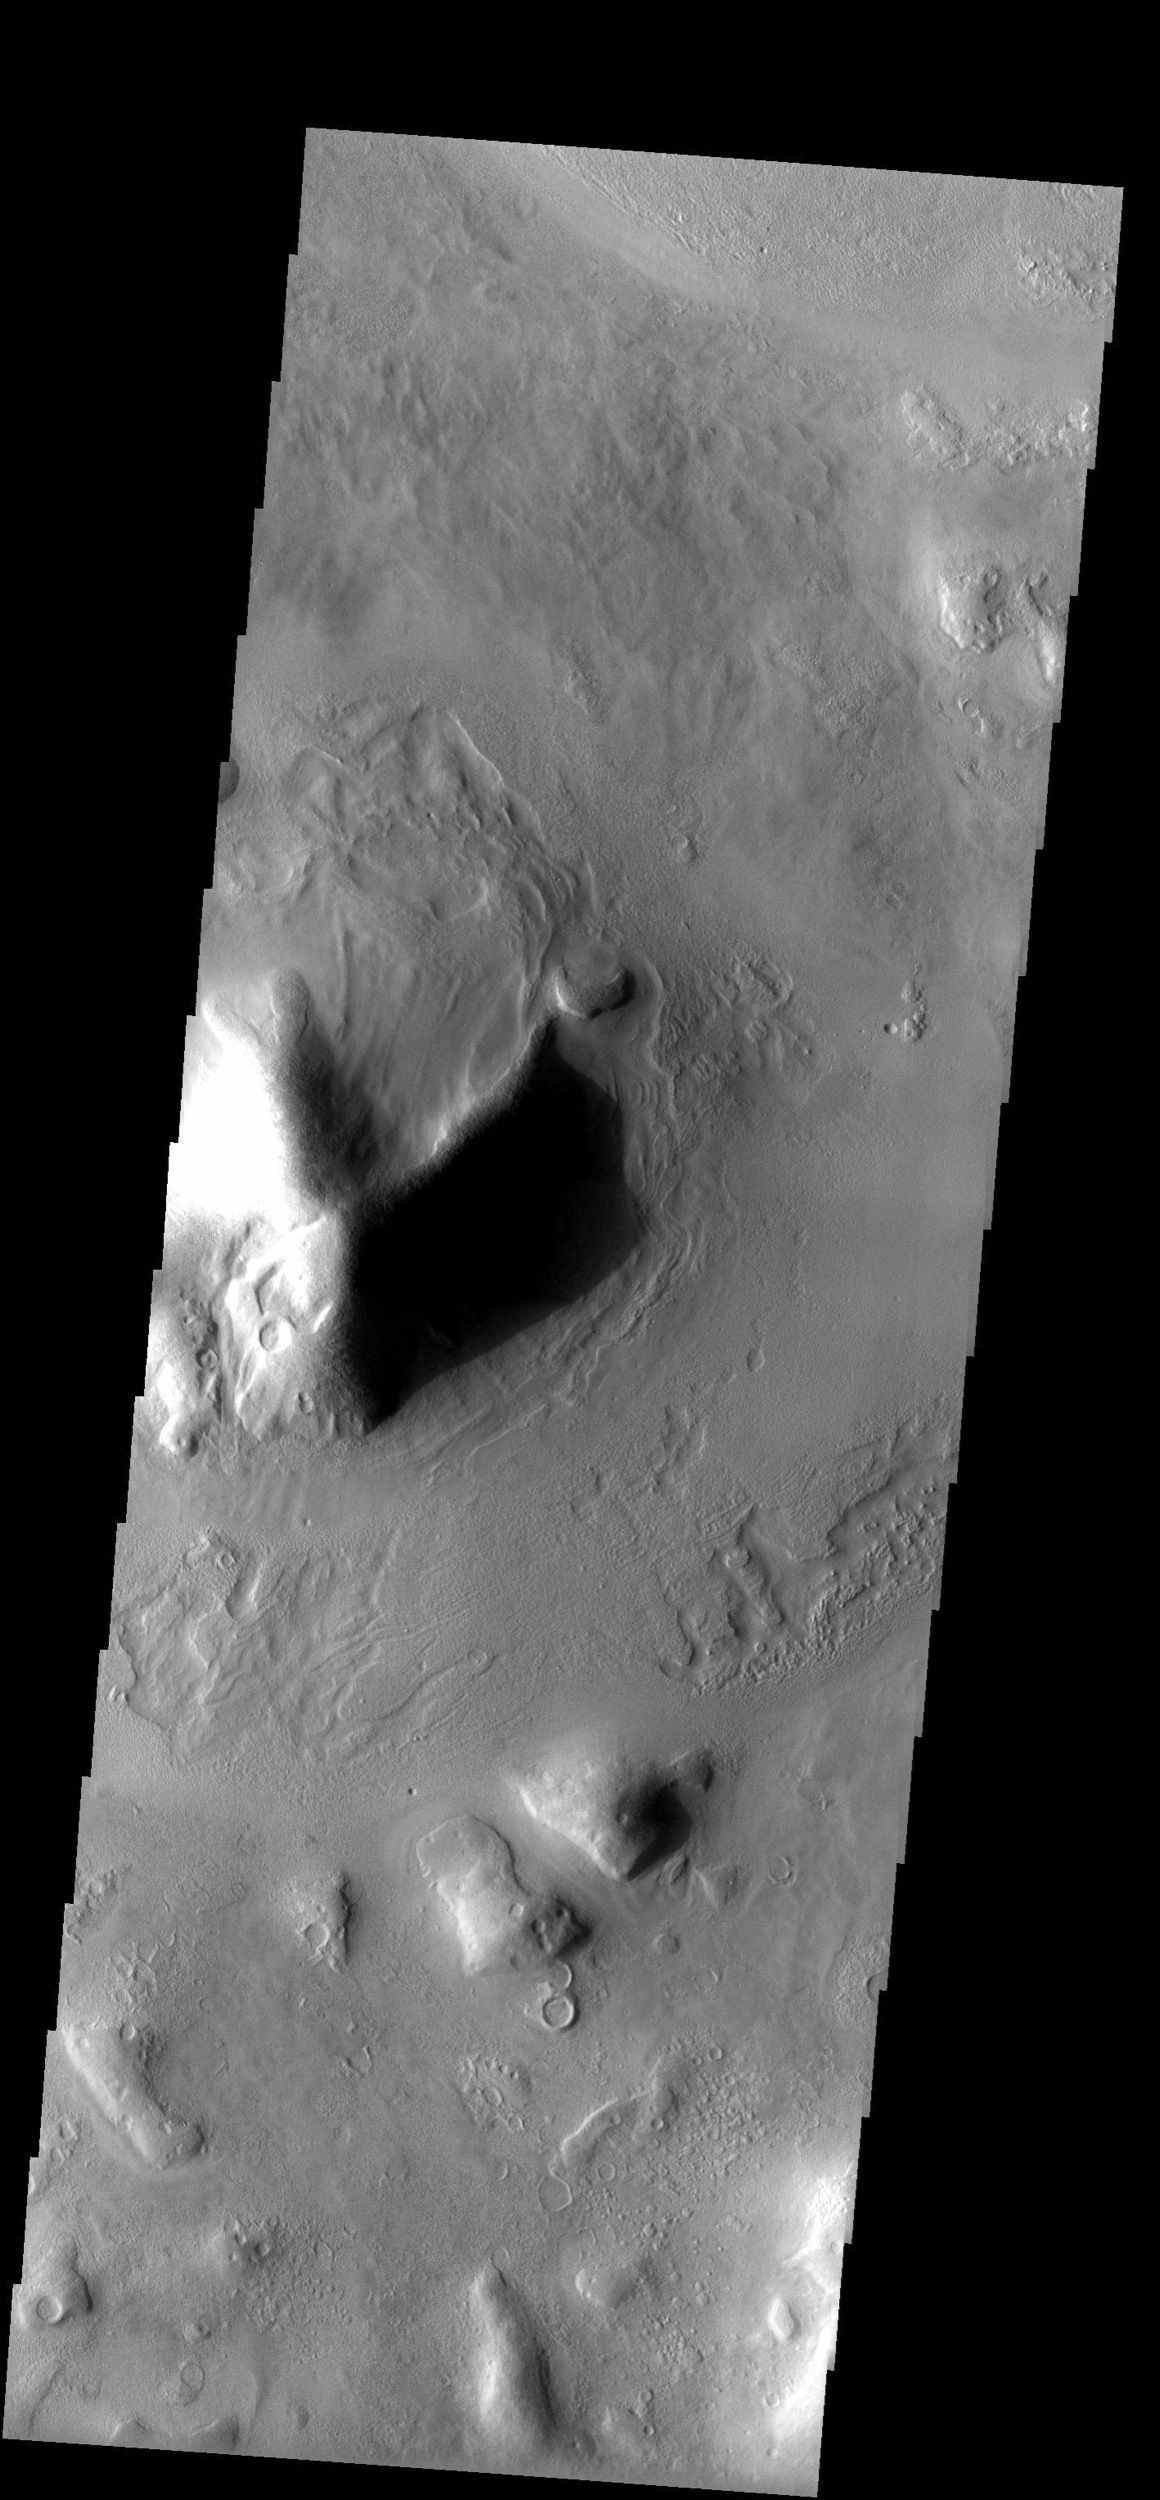 The mottled surface texture and flow features observed in this NASA Mars Odyssey image suggest materials may be, or have been, mixed with ice. There is also evidence in some areas for infilling of sediments as crater rims and ridges appear covered.